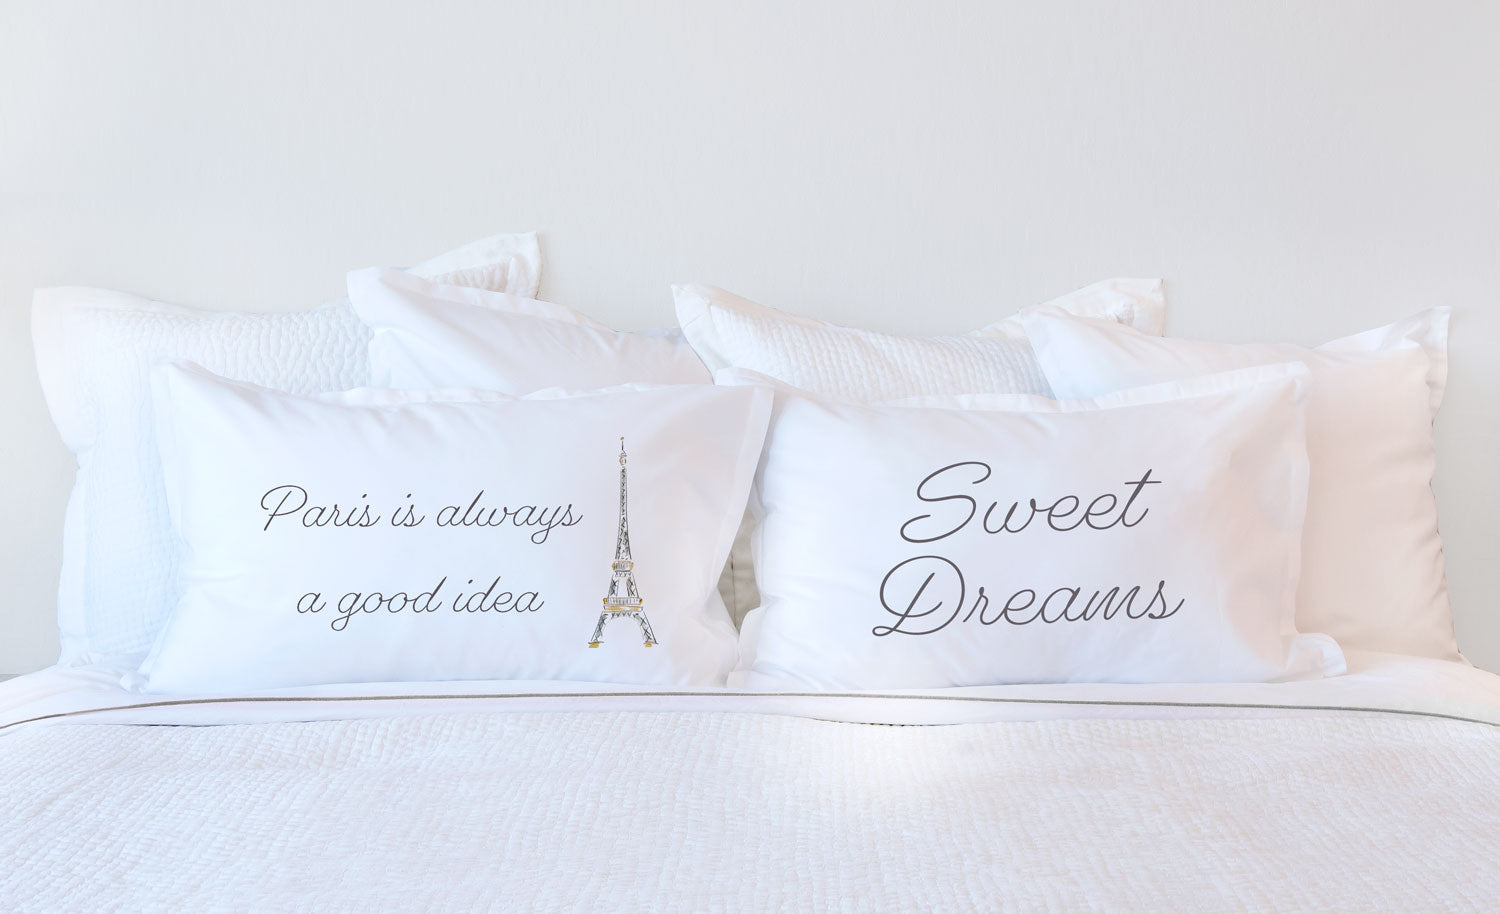 Sweet Dreams - Inspirational Quotes Pillowcase Collection-Di Lewis